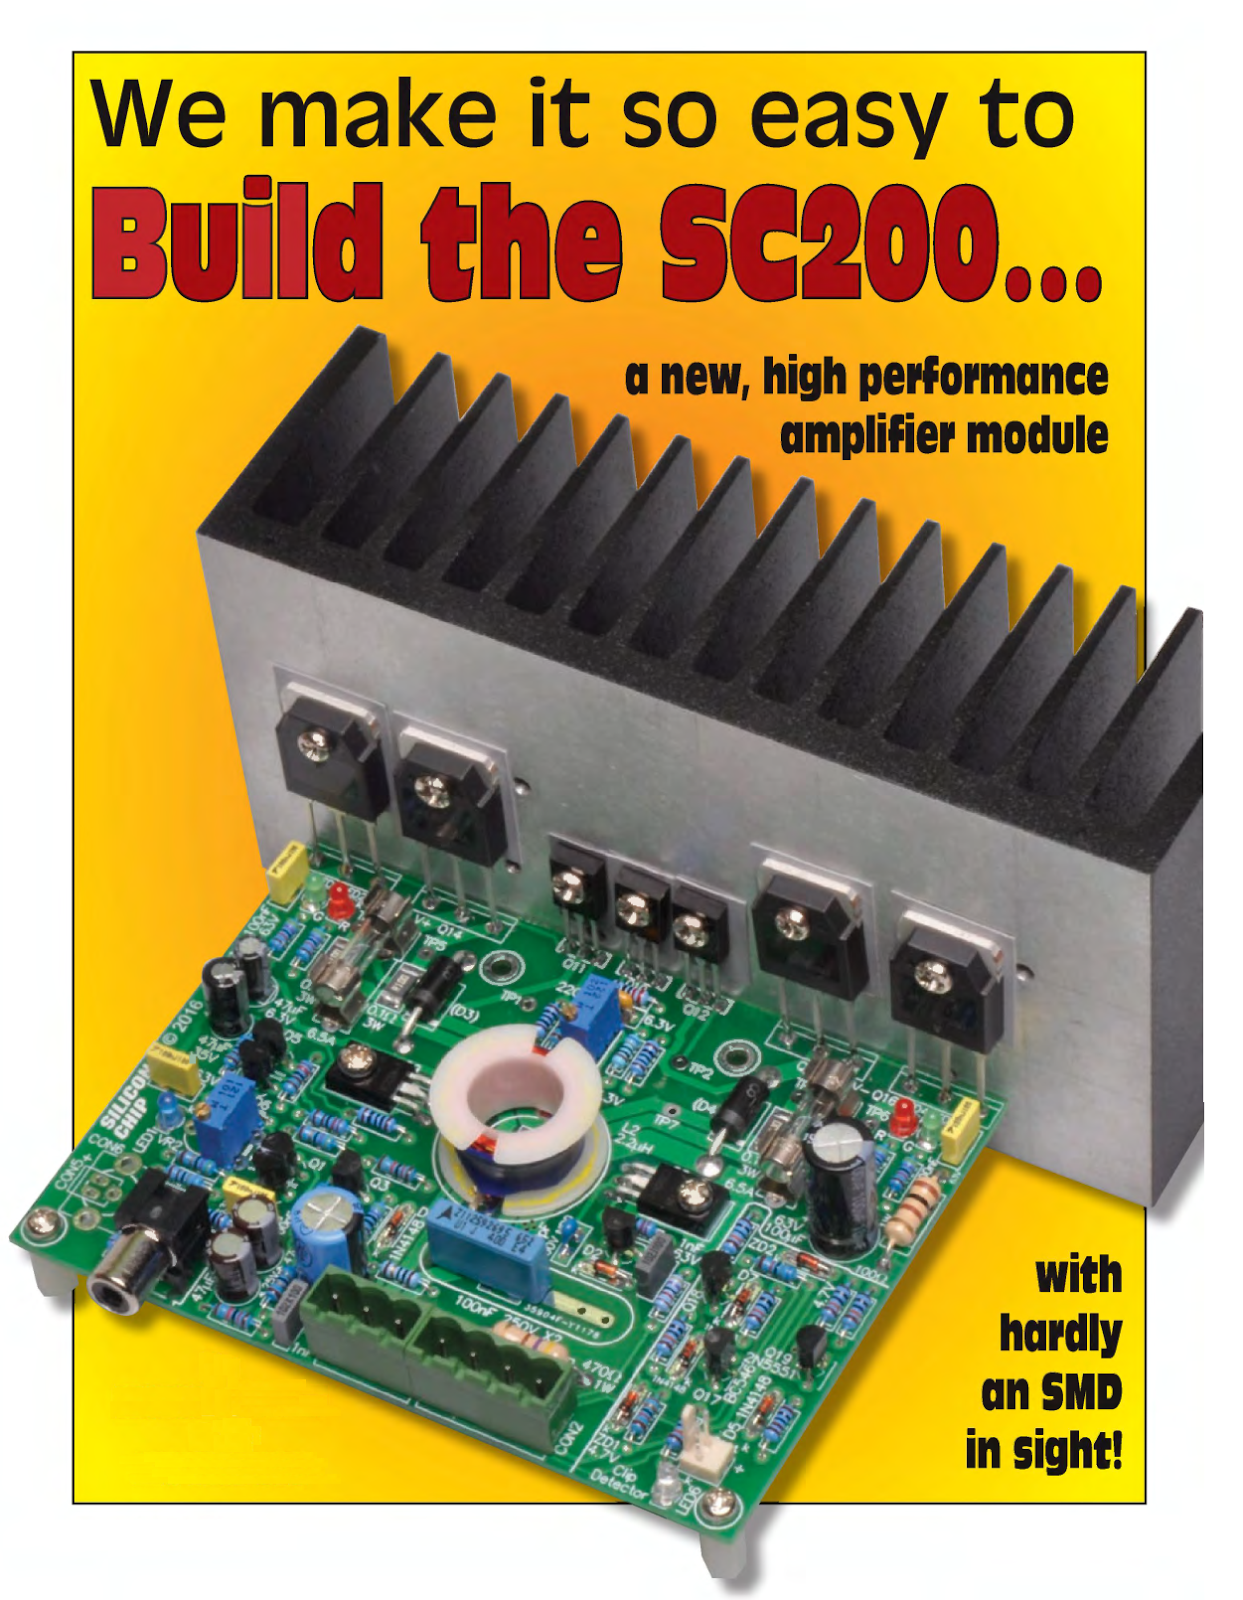 Sc200 Audio Amplifier Complete Project 200w Basics A Modern Stereo System Has Two This Completely New Circuit Incorporates Most Of The Features Our Ultra Lo Mk4 Module But Uses Easy To Solder Through Hole